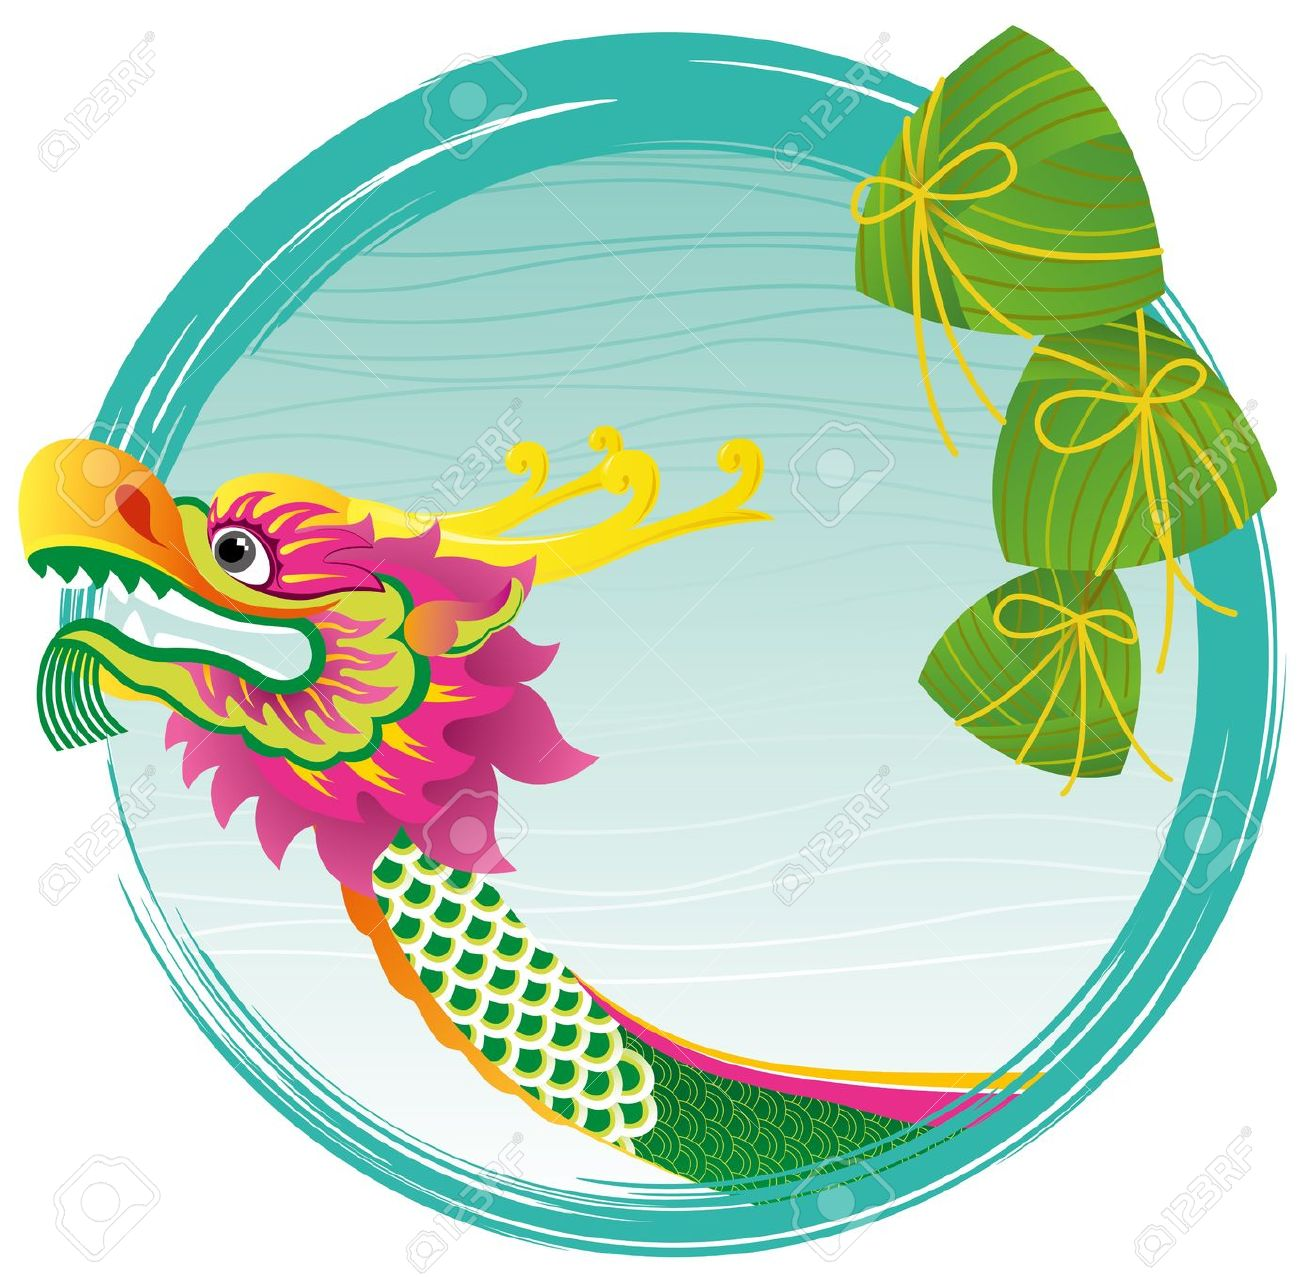 119 The Dragon Boat Festival Cliparts, Stock Vector And Royalty.